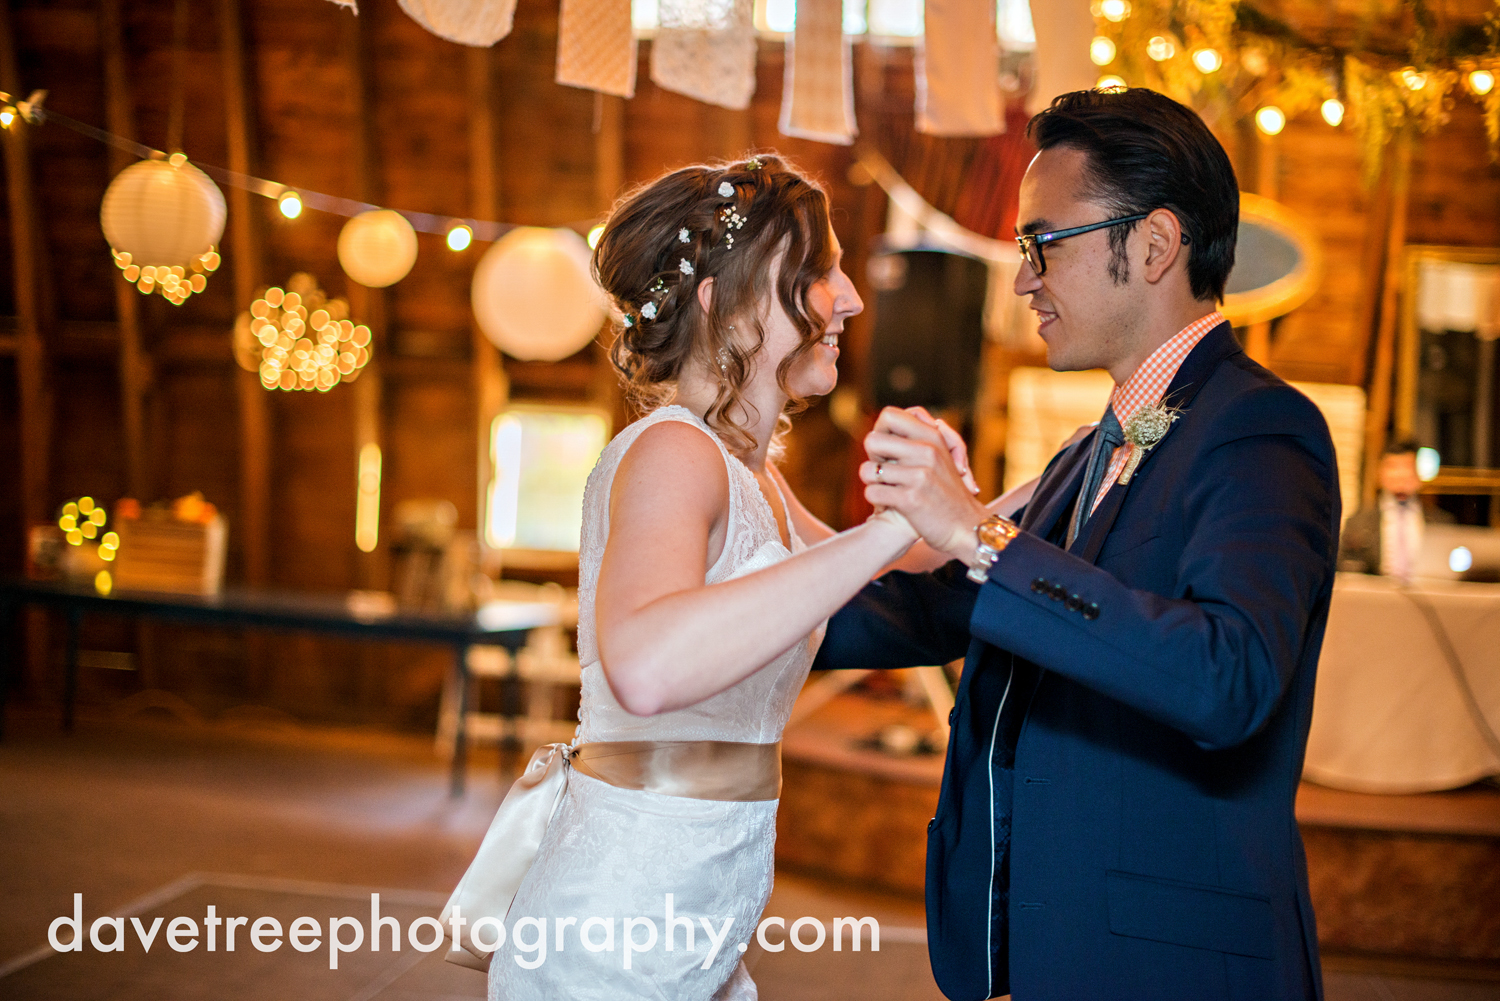 benton_harbor_wedding_photographer_blue_dress_barn_108.jpg